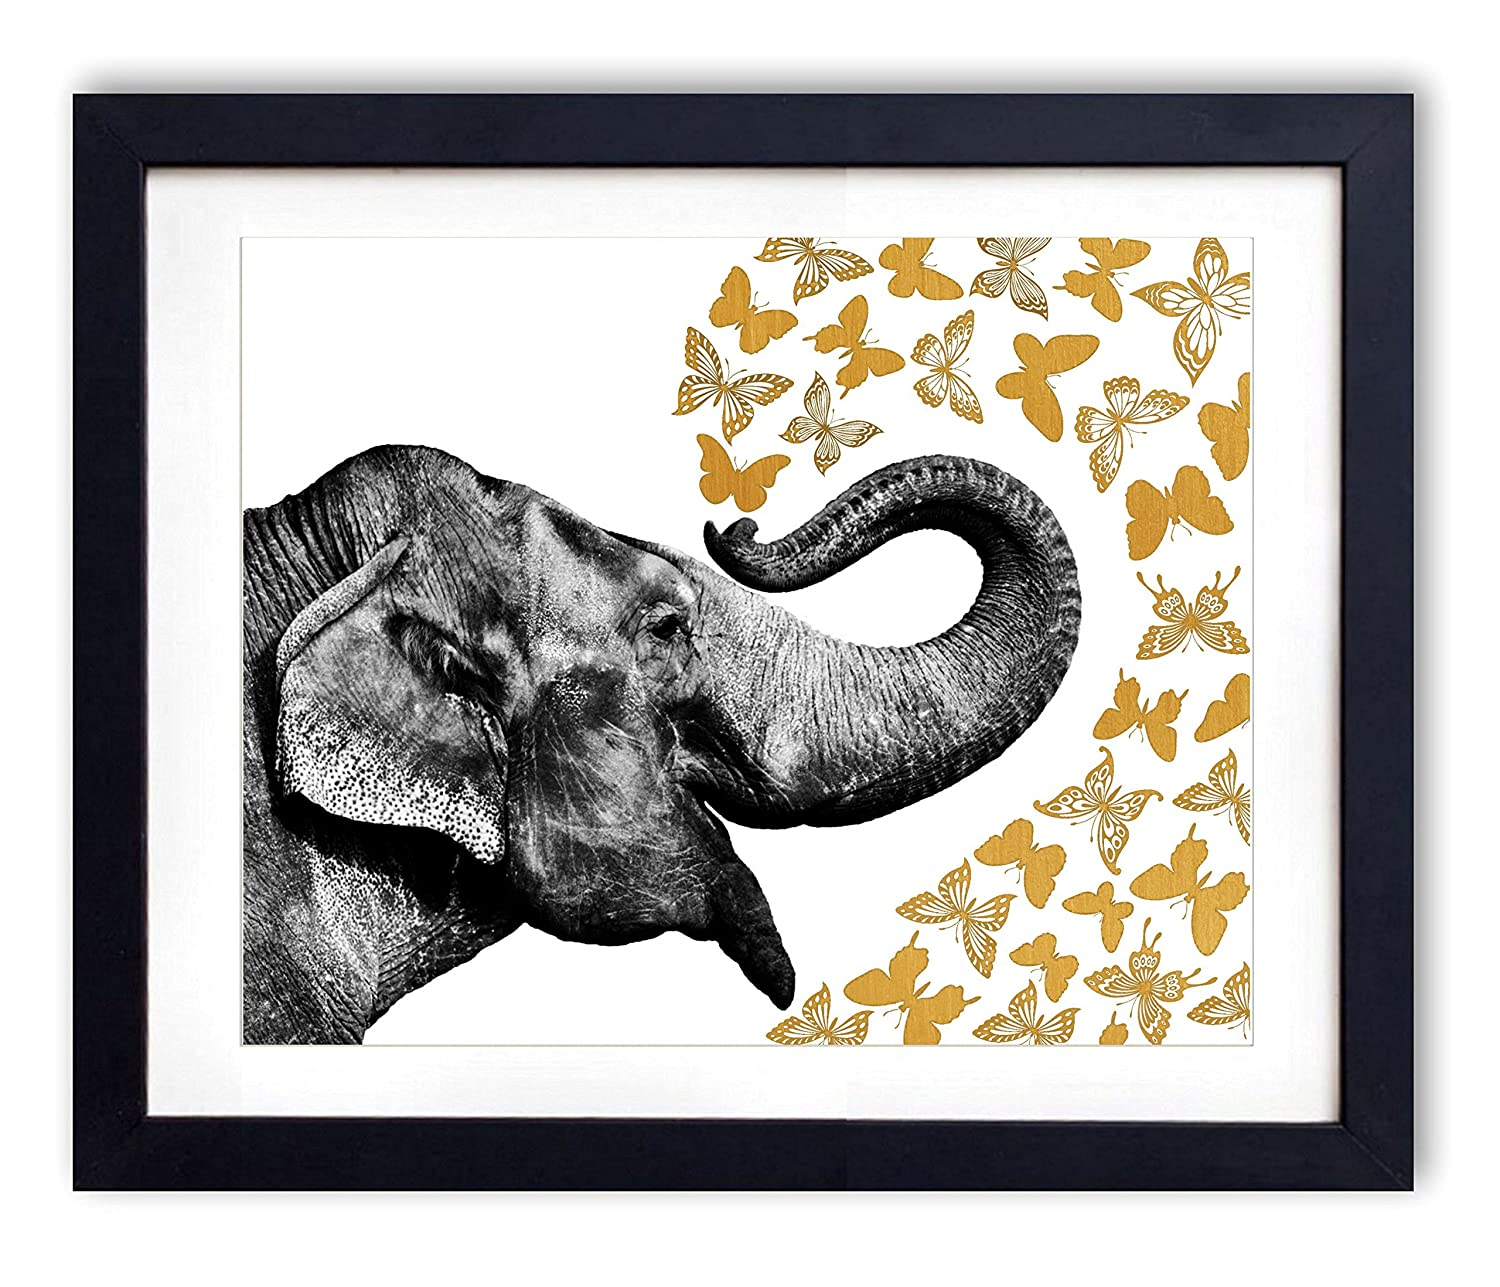 Gold Foil - Elephant With Butterflies Upcycled Wall Art Vintage Dictionary Art Print 8x10 inches / 20.32 x 25.4 cm Unframed